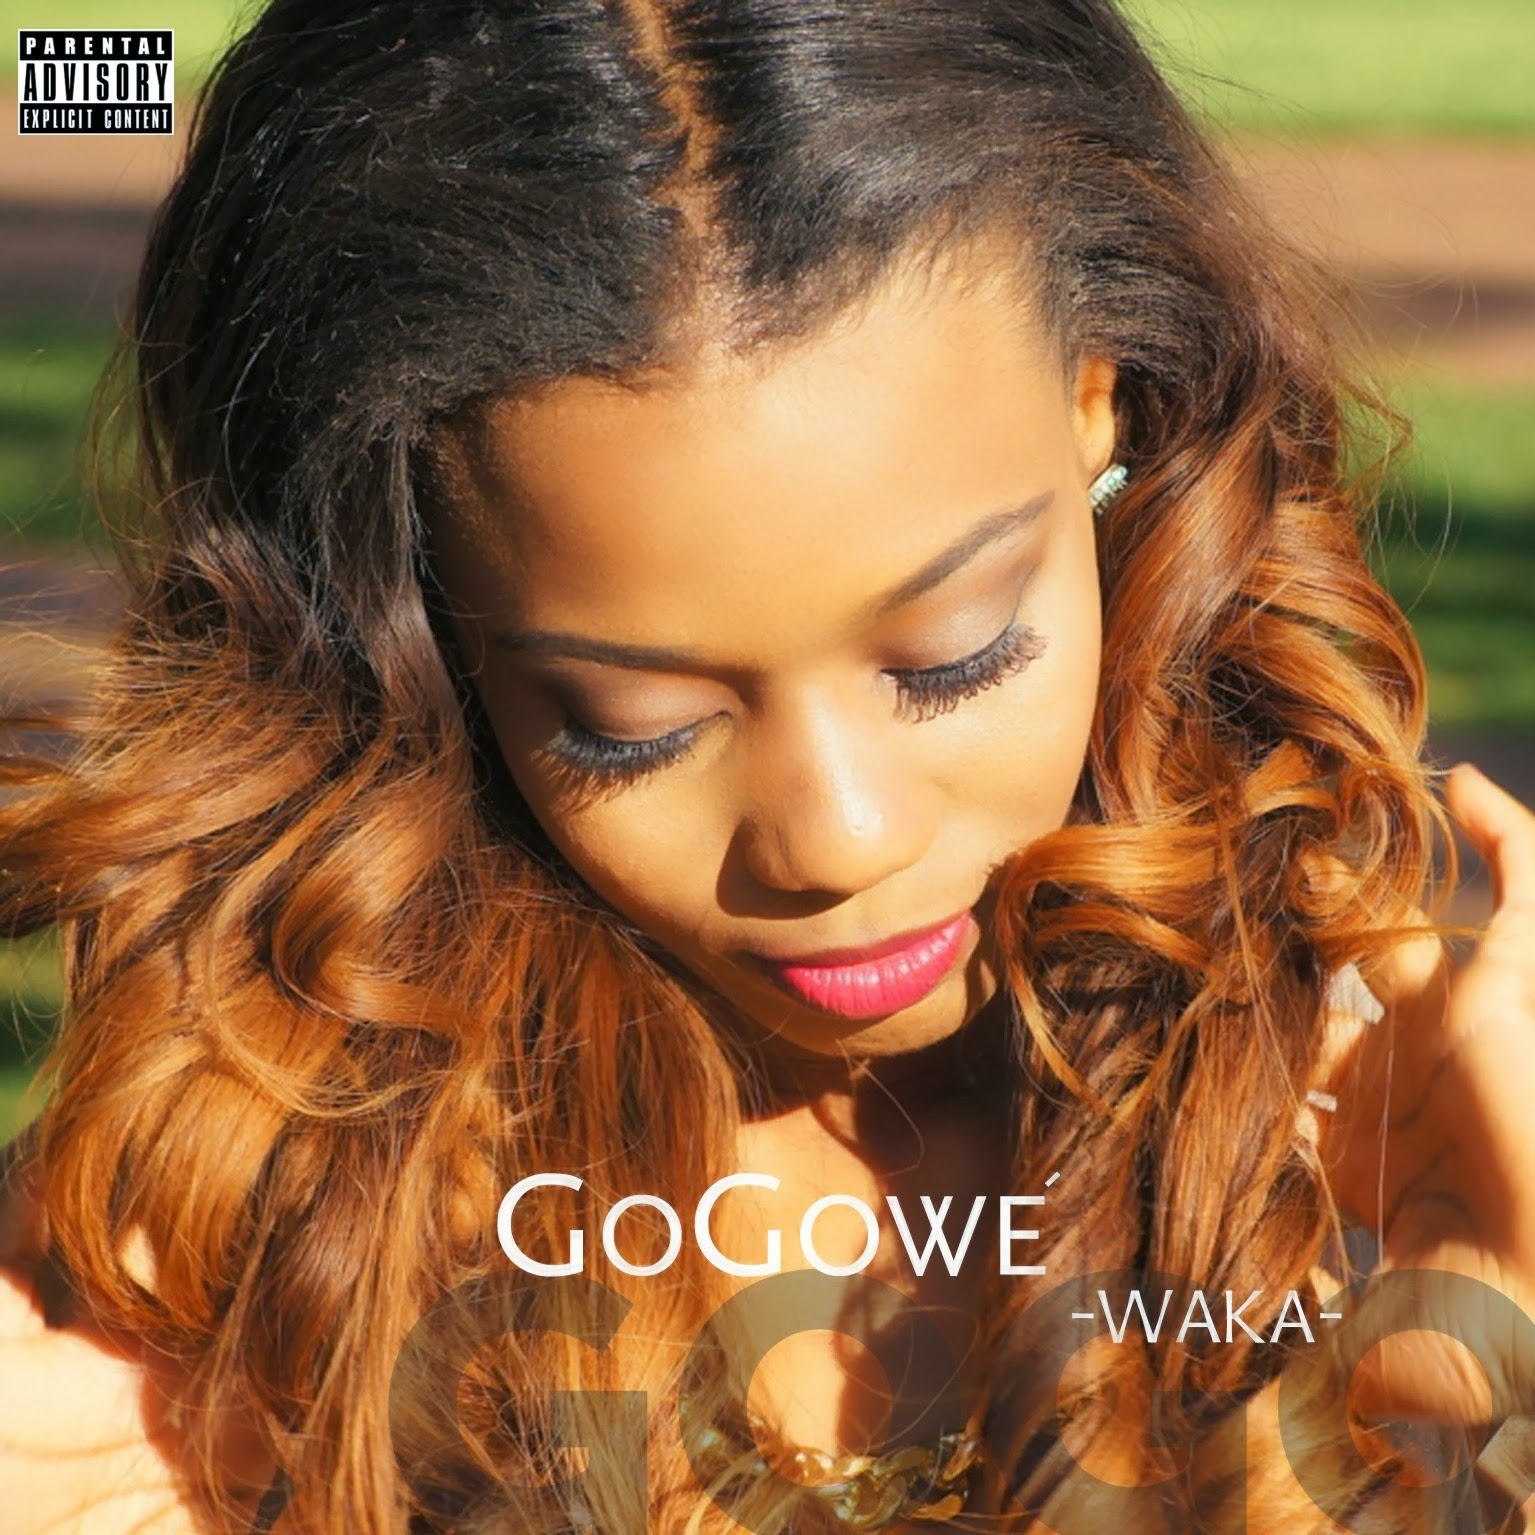 New Music: Waka - Gogowe